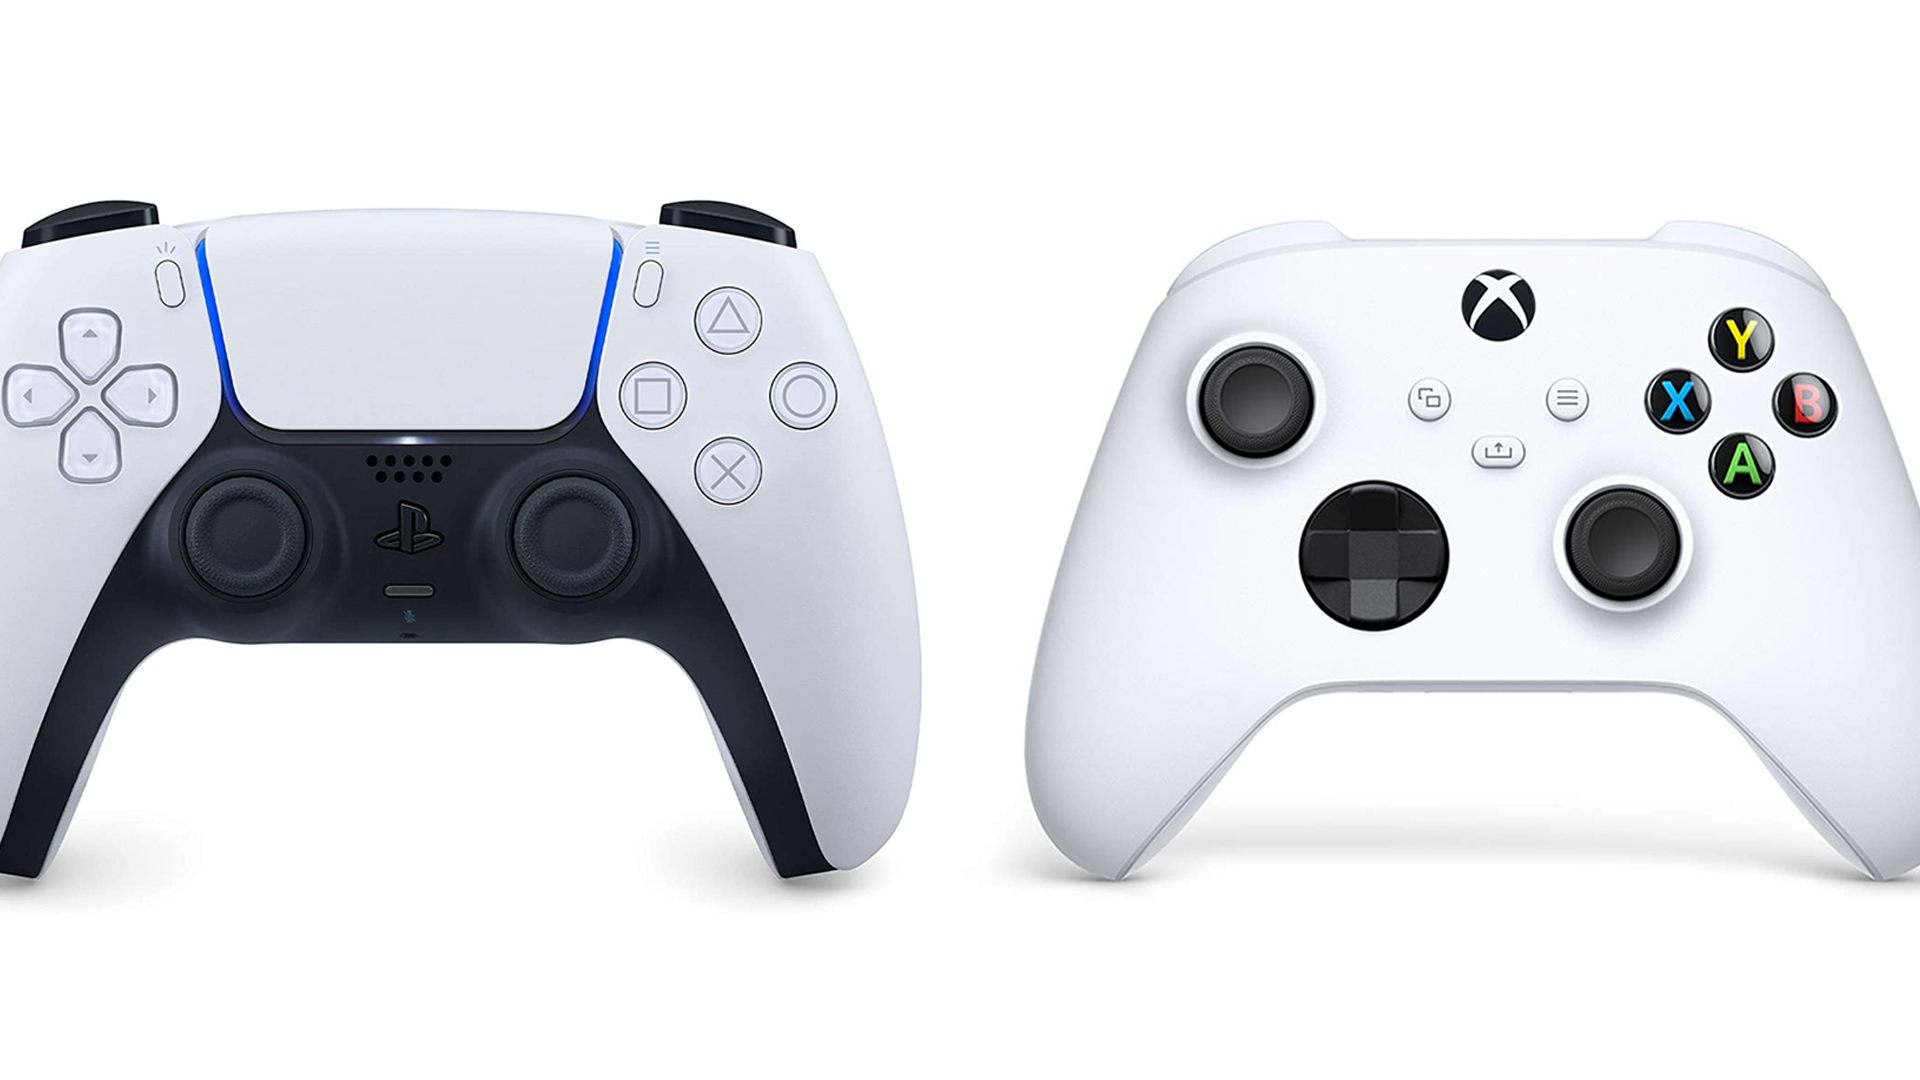 A photo of the PS5 and Xbox controllers.